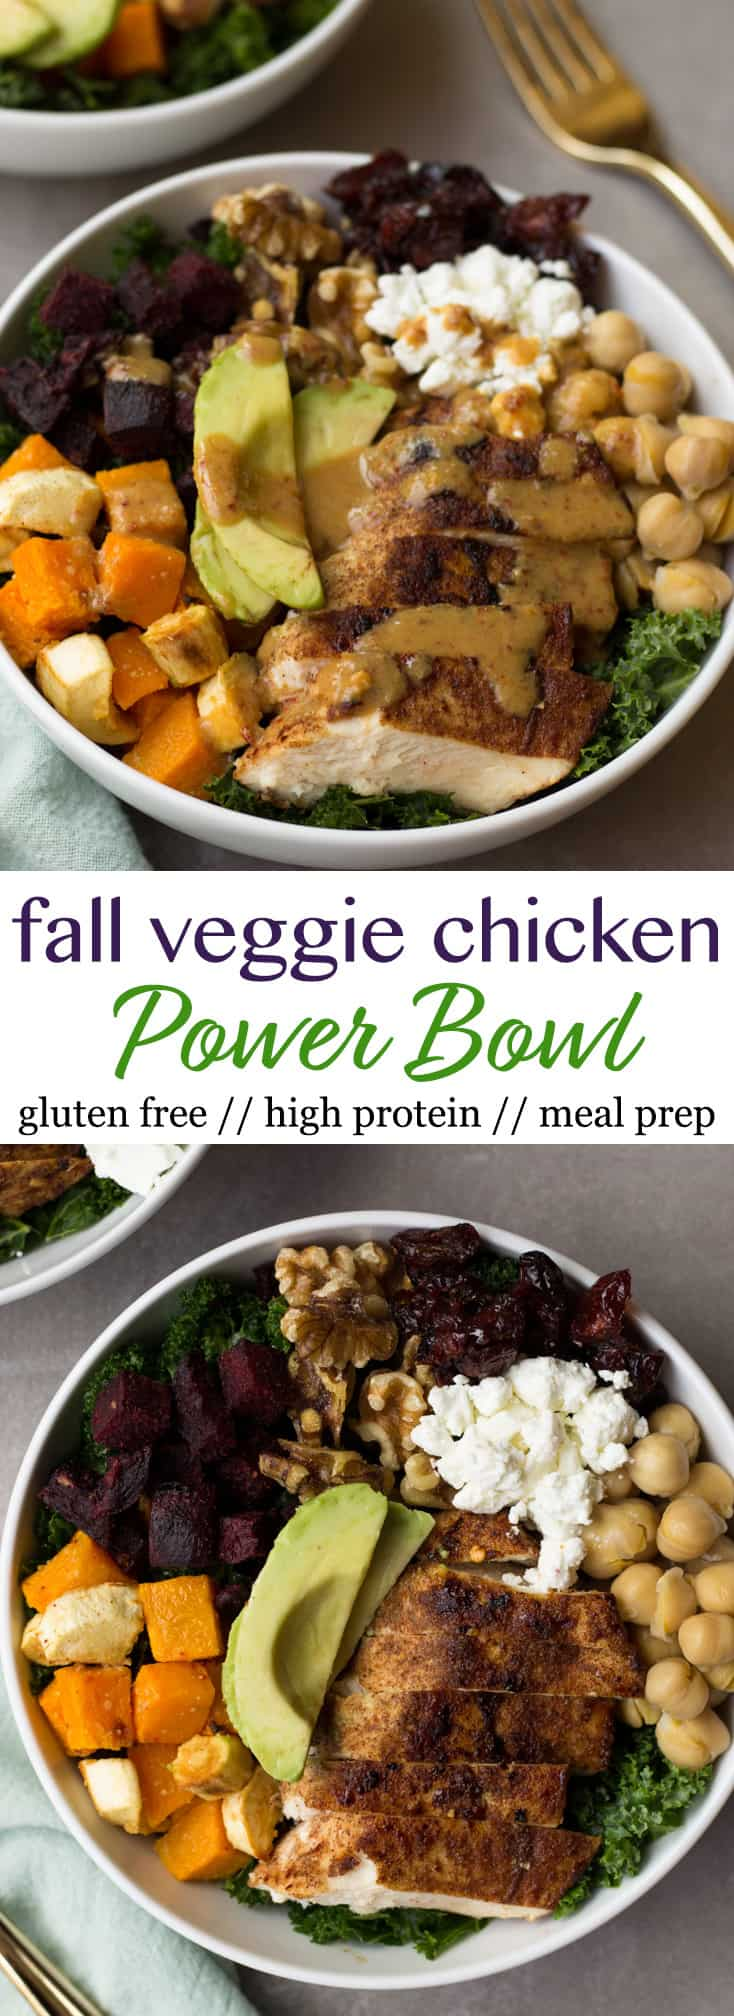 This Fall Veggie Chicken Power Bowlmakes the perfect light, healthy, and gluten free winter meal - packed with protein, carbs, and healthy fats and so manyvitamins & minerals! - Eat the Gains